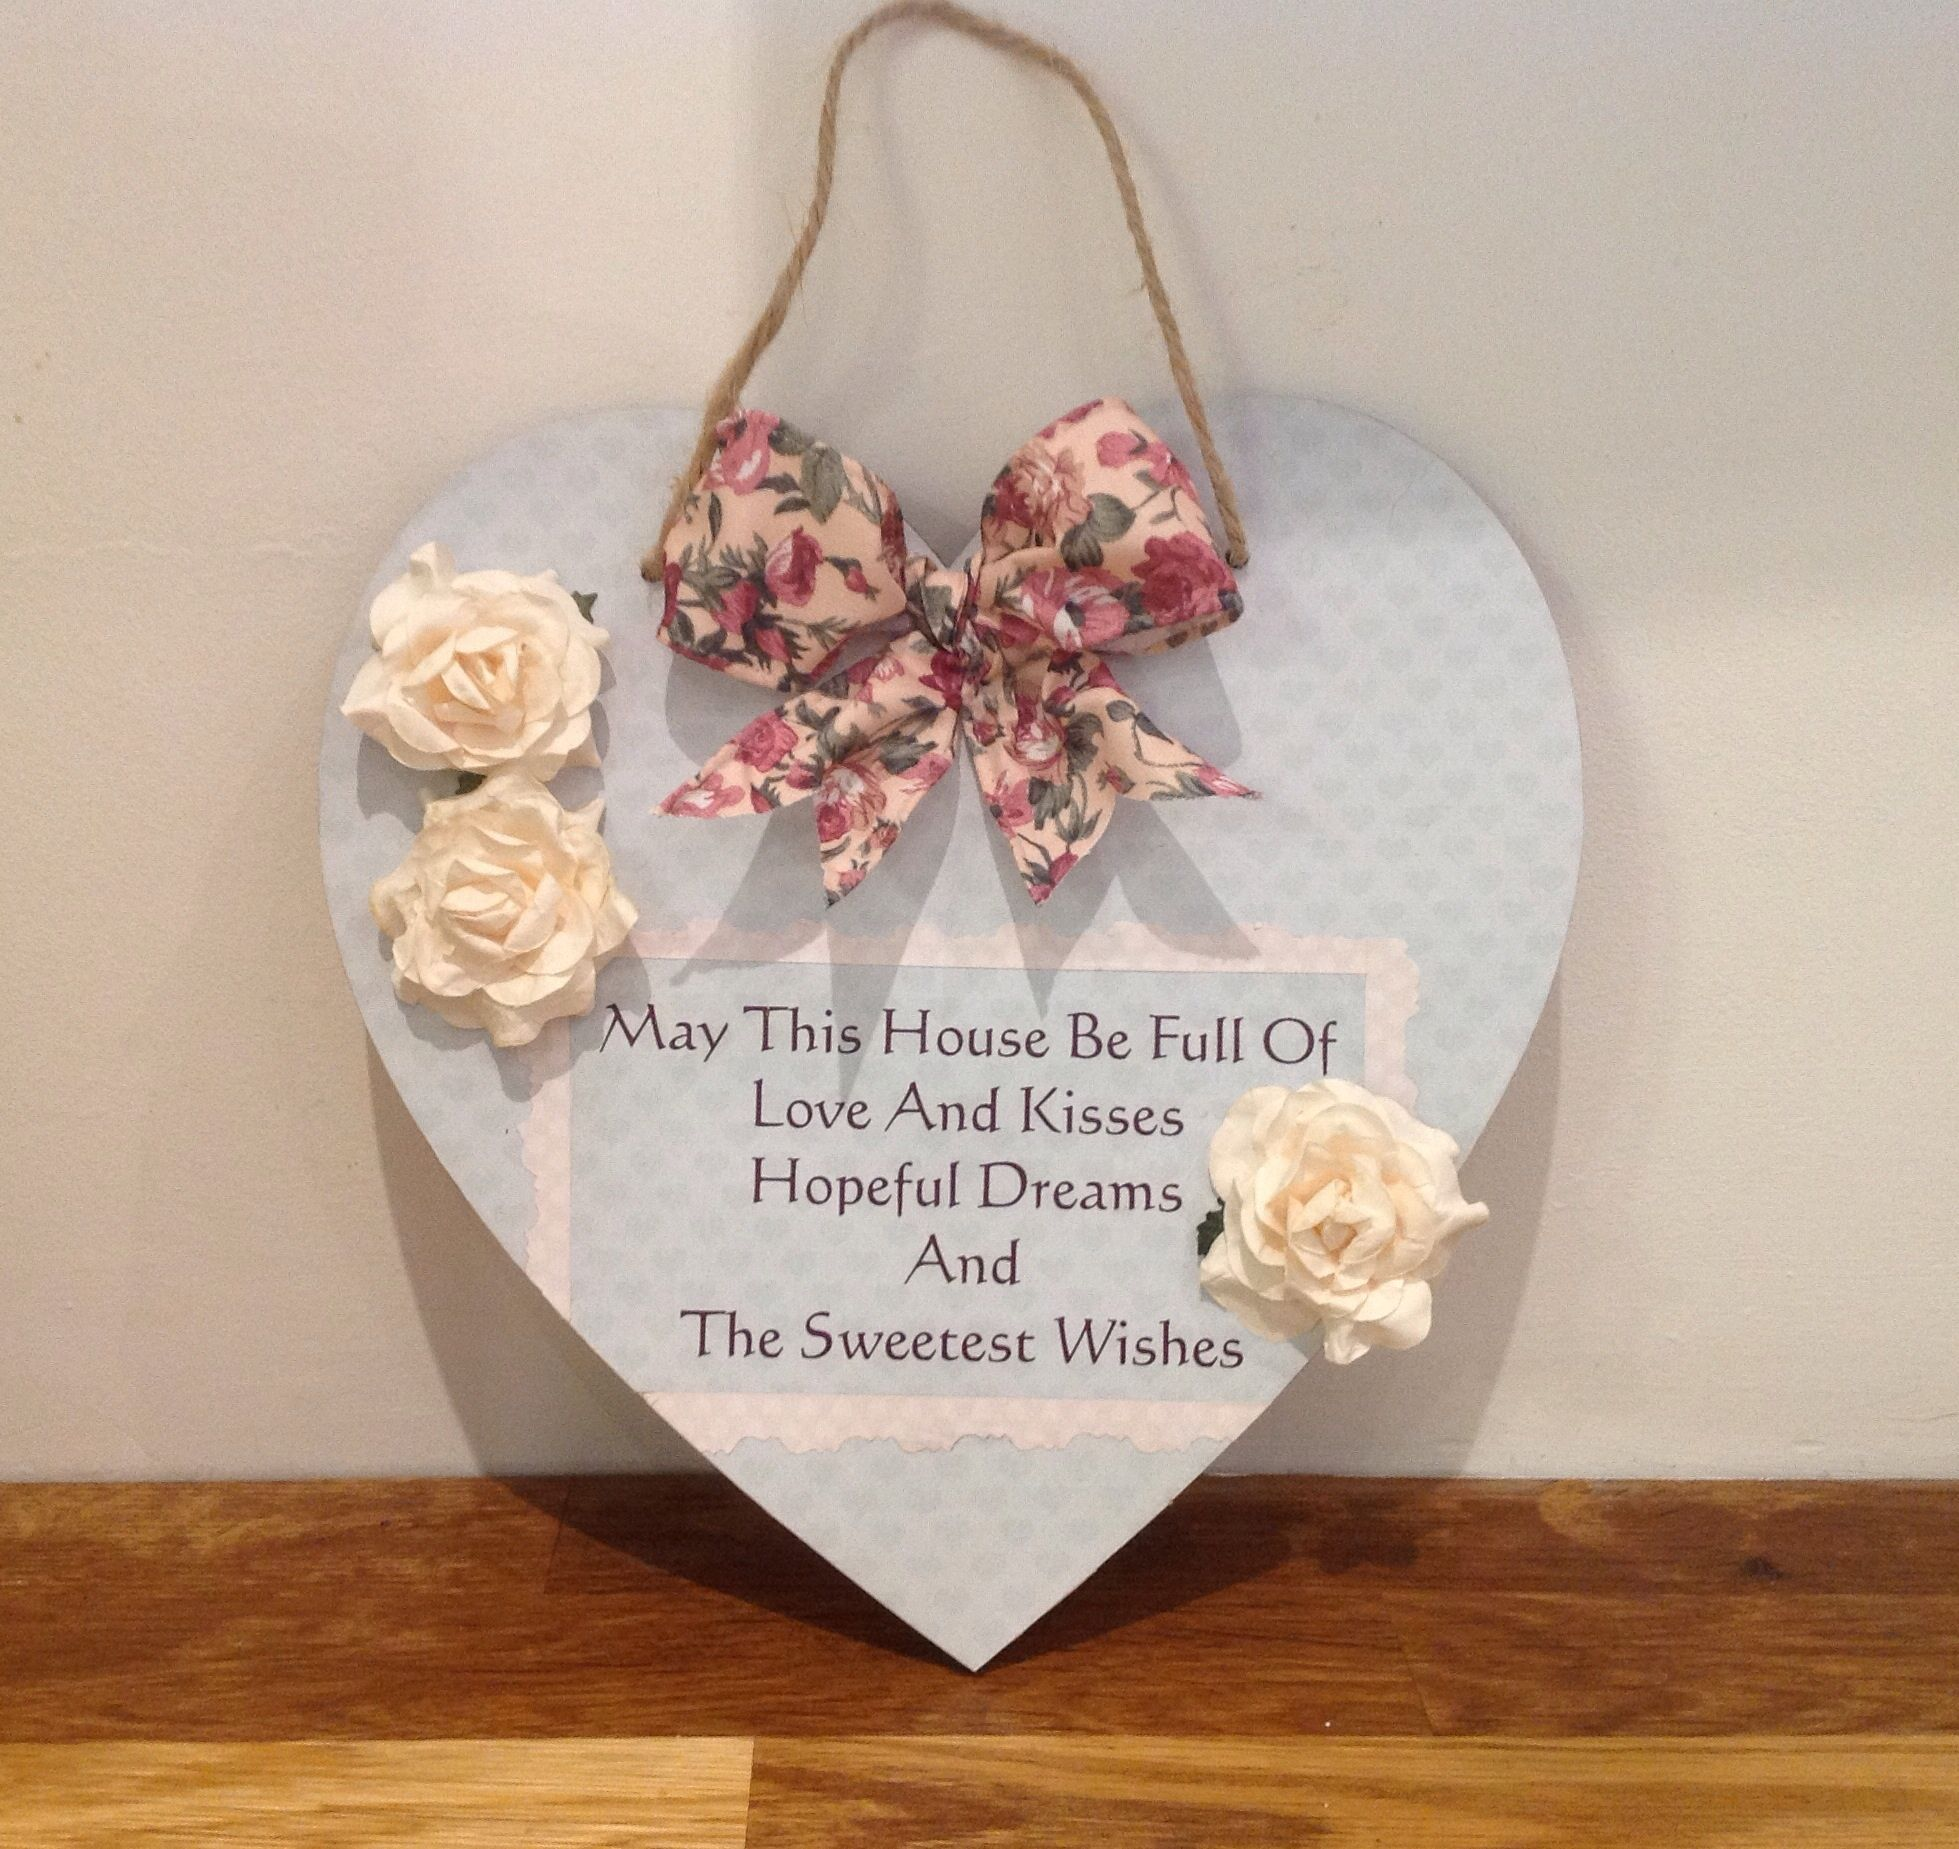 Mdf heart and papers craft ideas pinterest craft heart mdf heart and papers jeuxipadfo Image collections